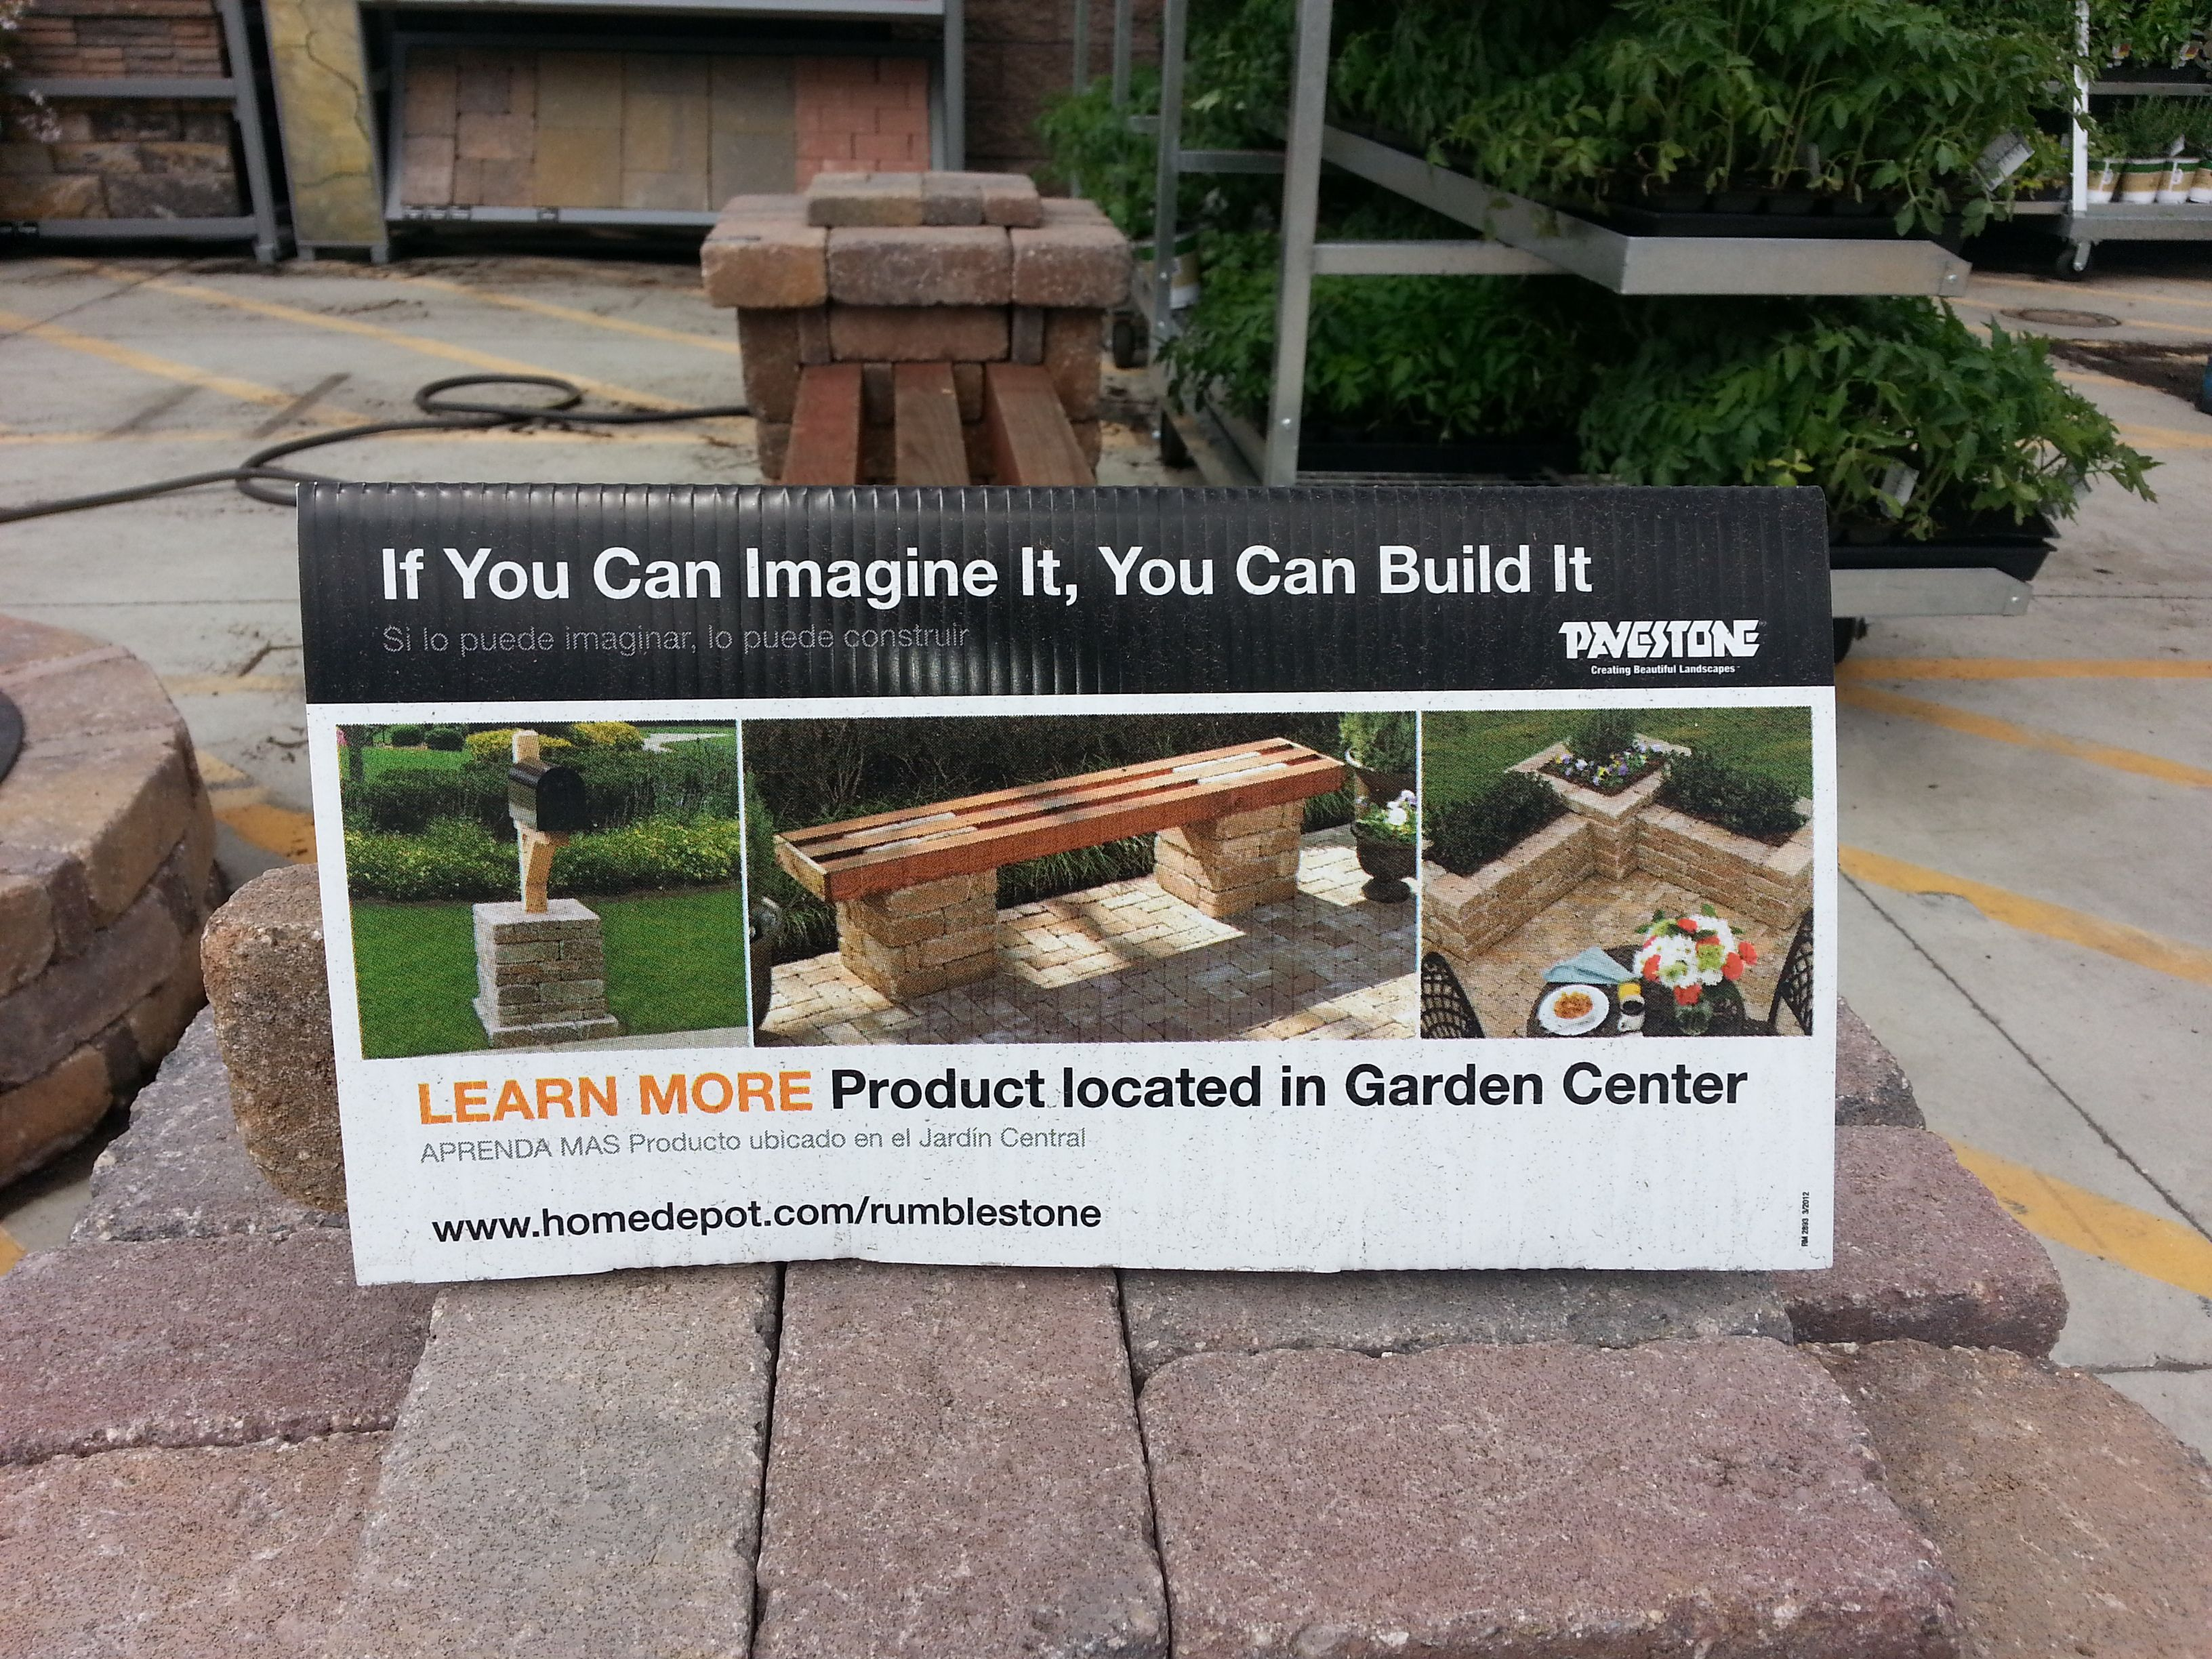 You can build it!